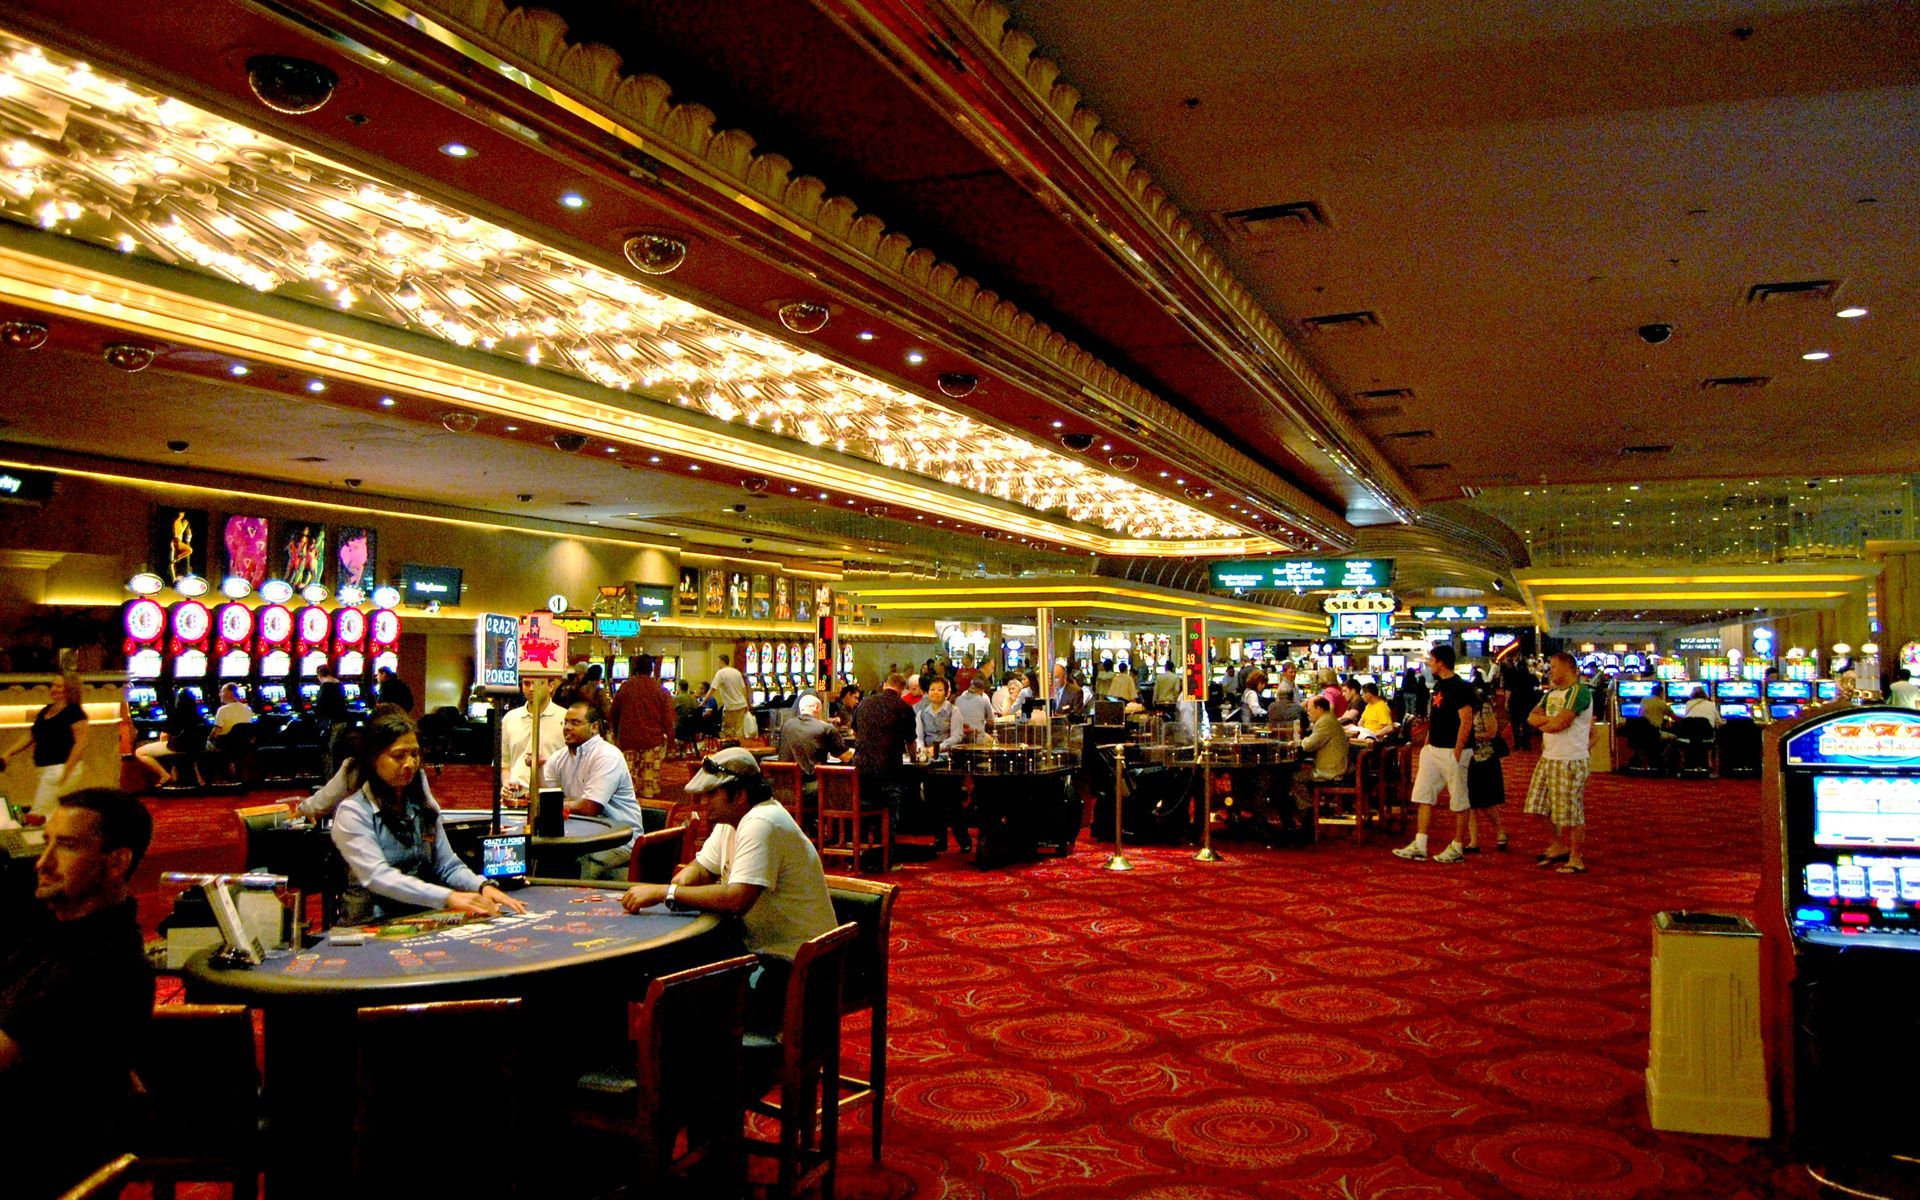 Pictures of the casinos in l as vegas christi corpus elko from gambling nevada package